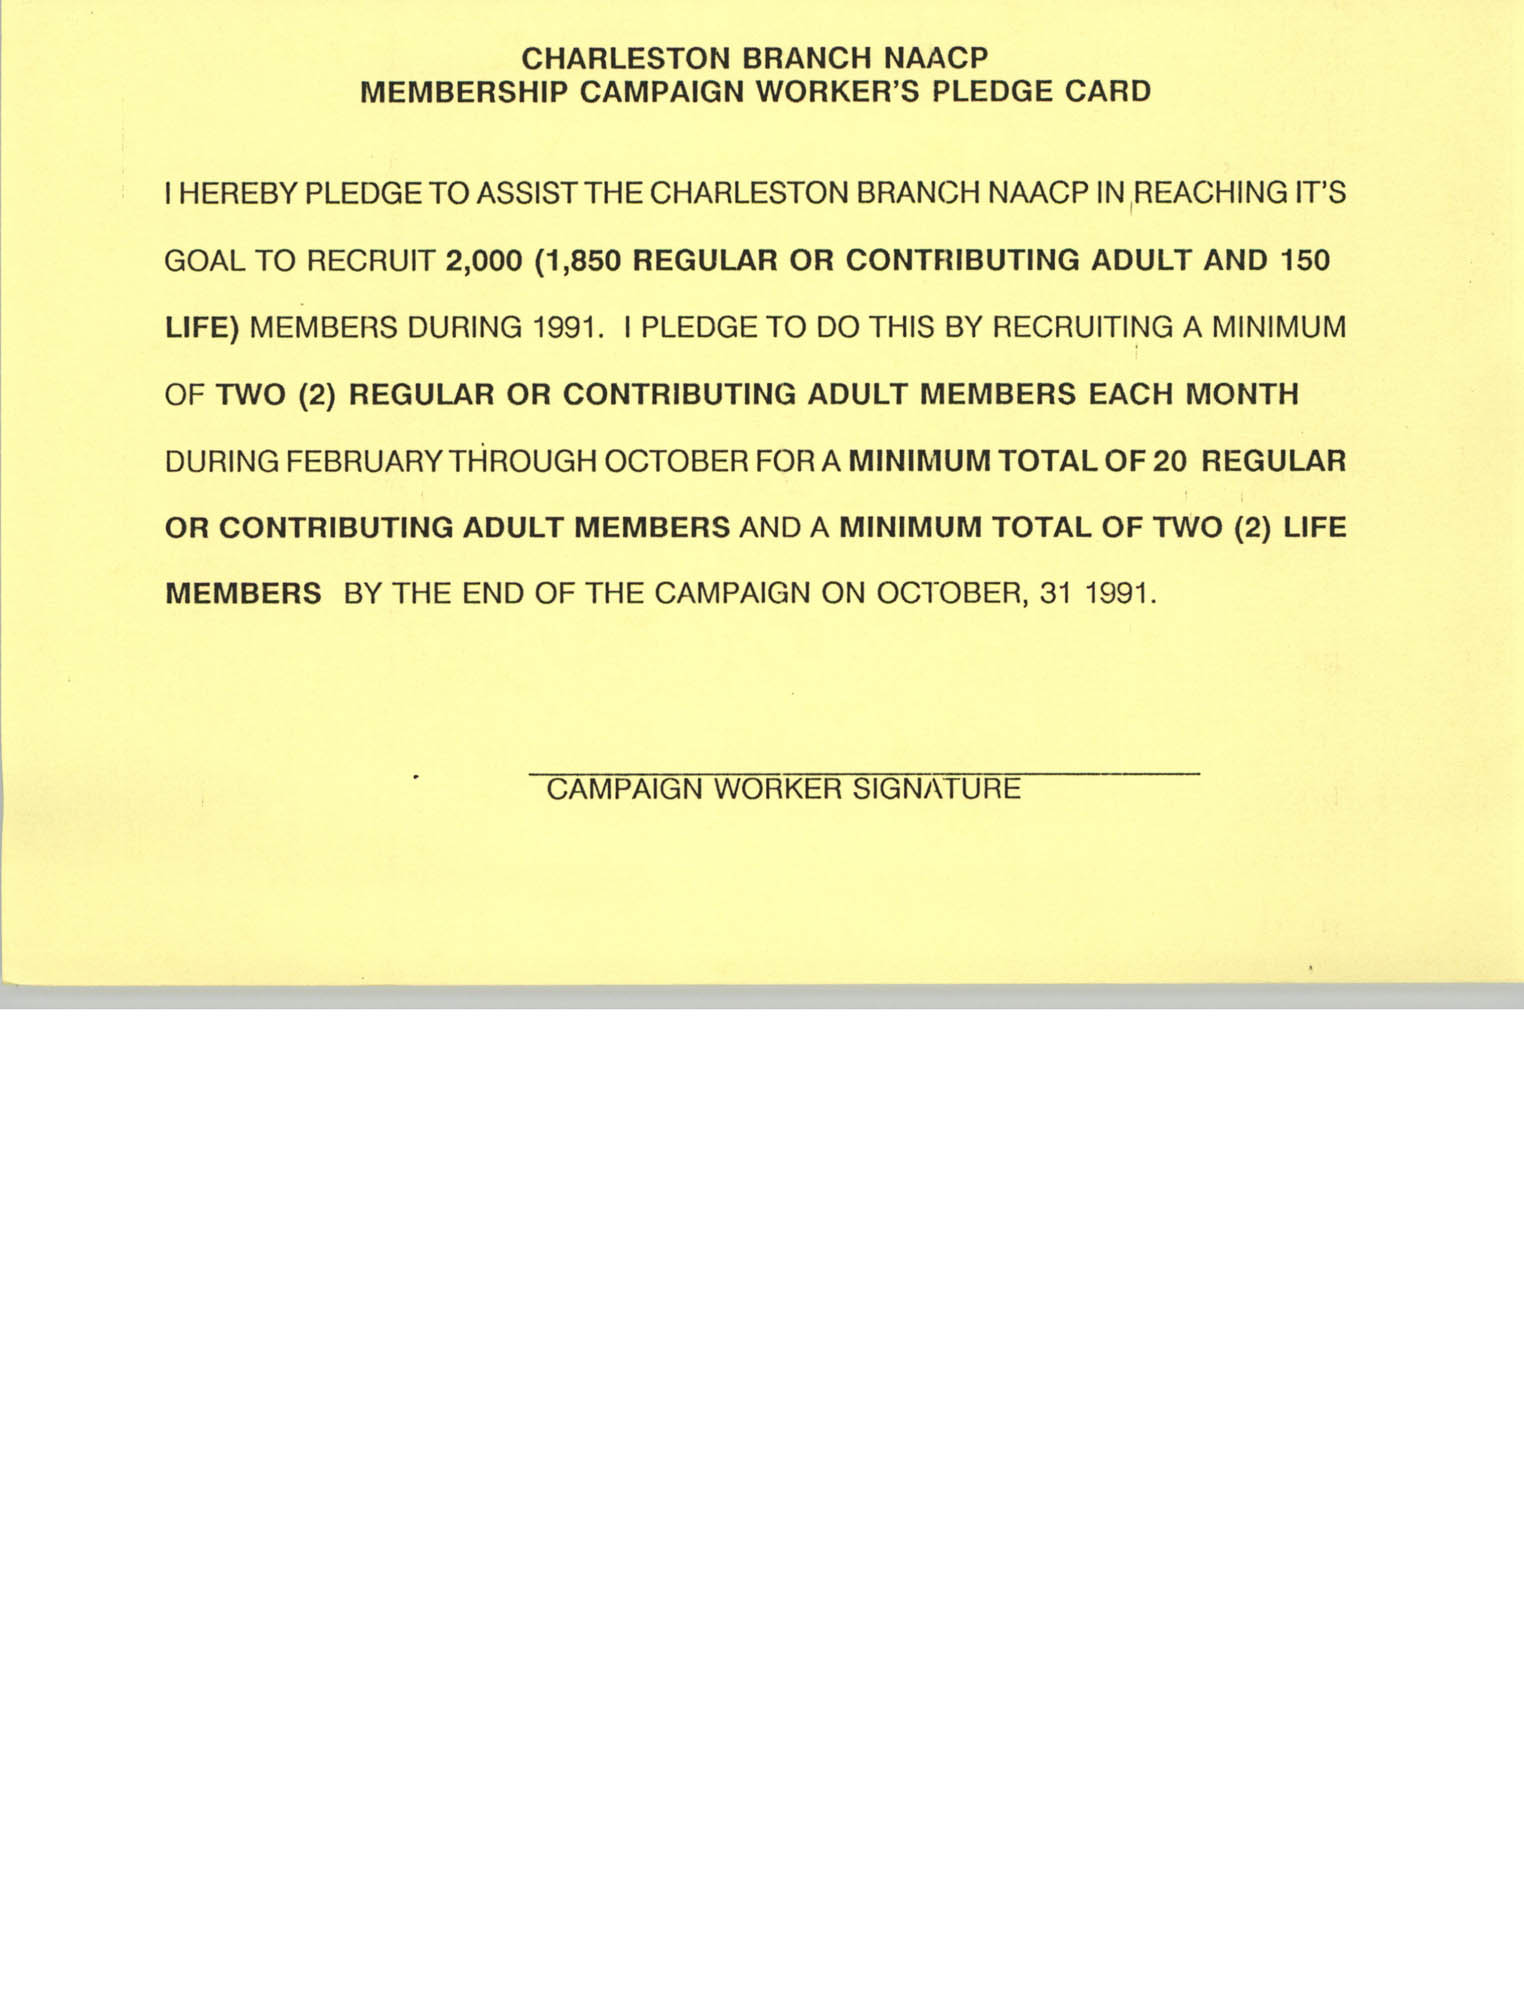 Membership Campaign Worker's Pledge Card, National Association for the Advancement of Colored People, 1991